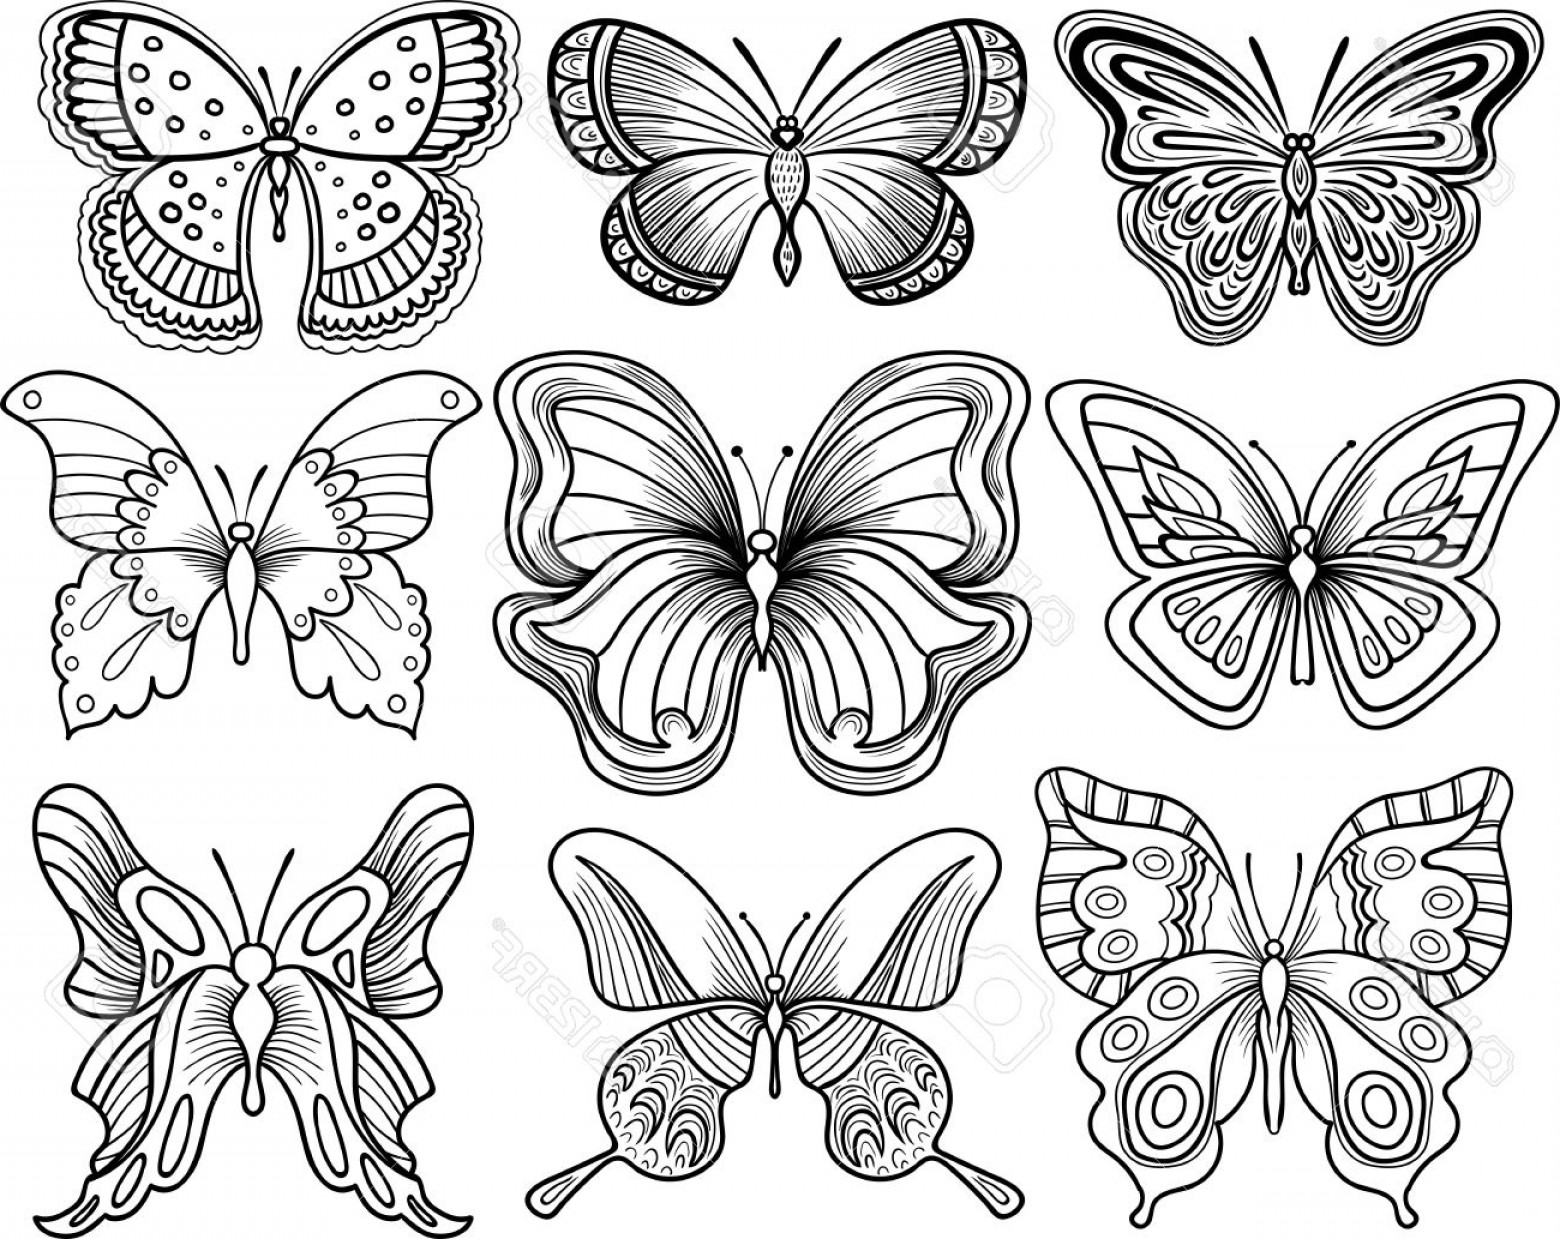 Butterly Vector: Outline Drawing Of Butterfly Hand Drawing Butterfly Vector Clipart Black Outline Royalty Free